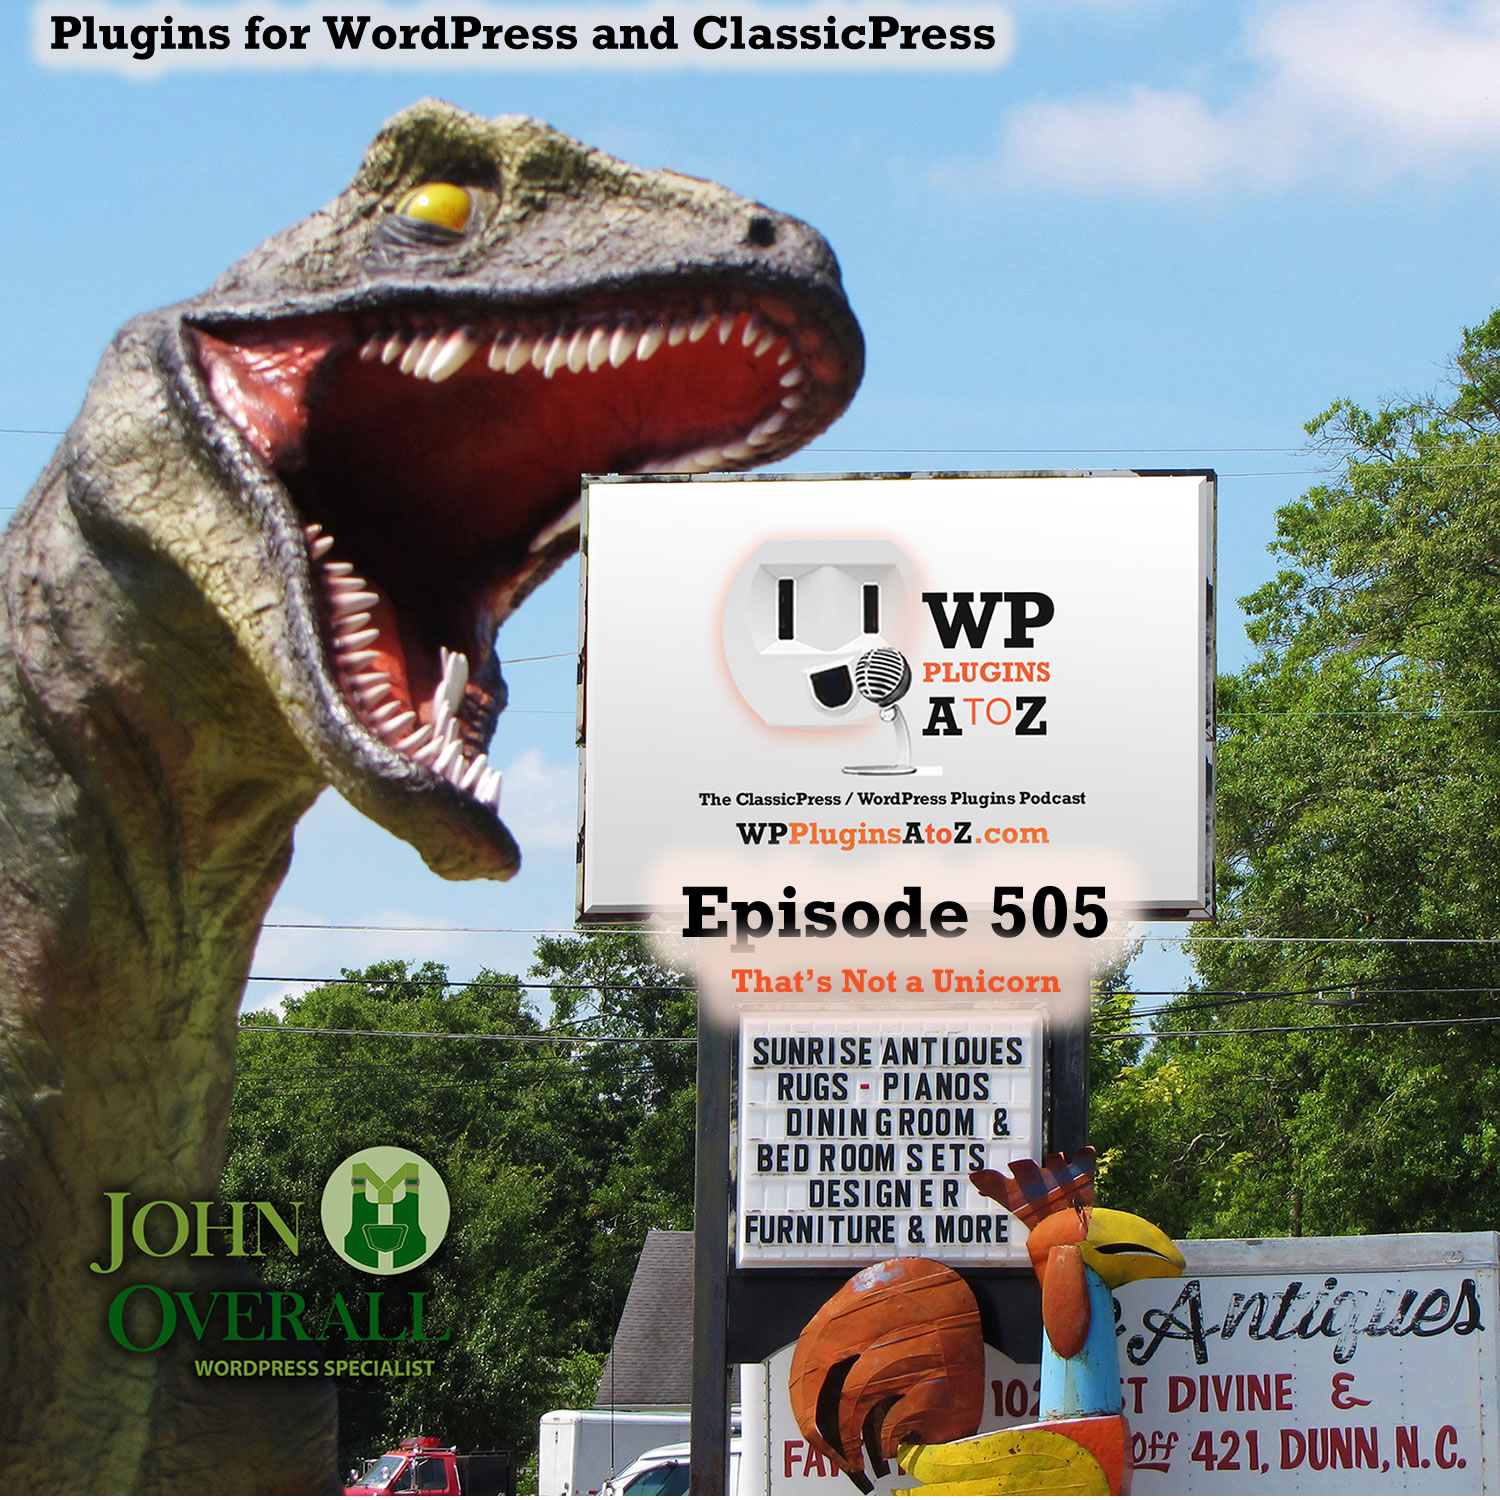 That's Not a Unicorn It's Episode 505 - We have plugins for Pulling off April Fools day; including Unicorns, Fresh Eggs, Seeing in Black & White, Making it all Disappear....., and ClassicPress Options. It's all coming up on WordPress Plugins A-Z! WP Pranks, Cornify for WordPress, Easter Egg Drop, WP Pranks, Now You See Me!, Zing! and ClassicPress options on Episode 505